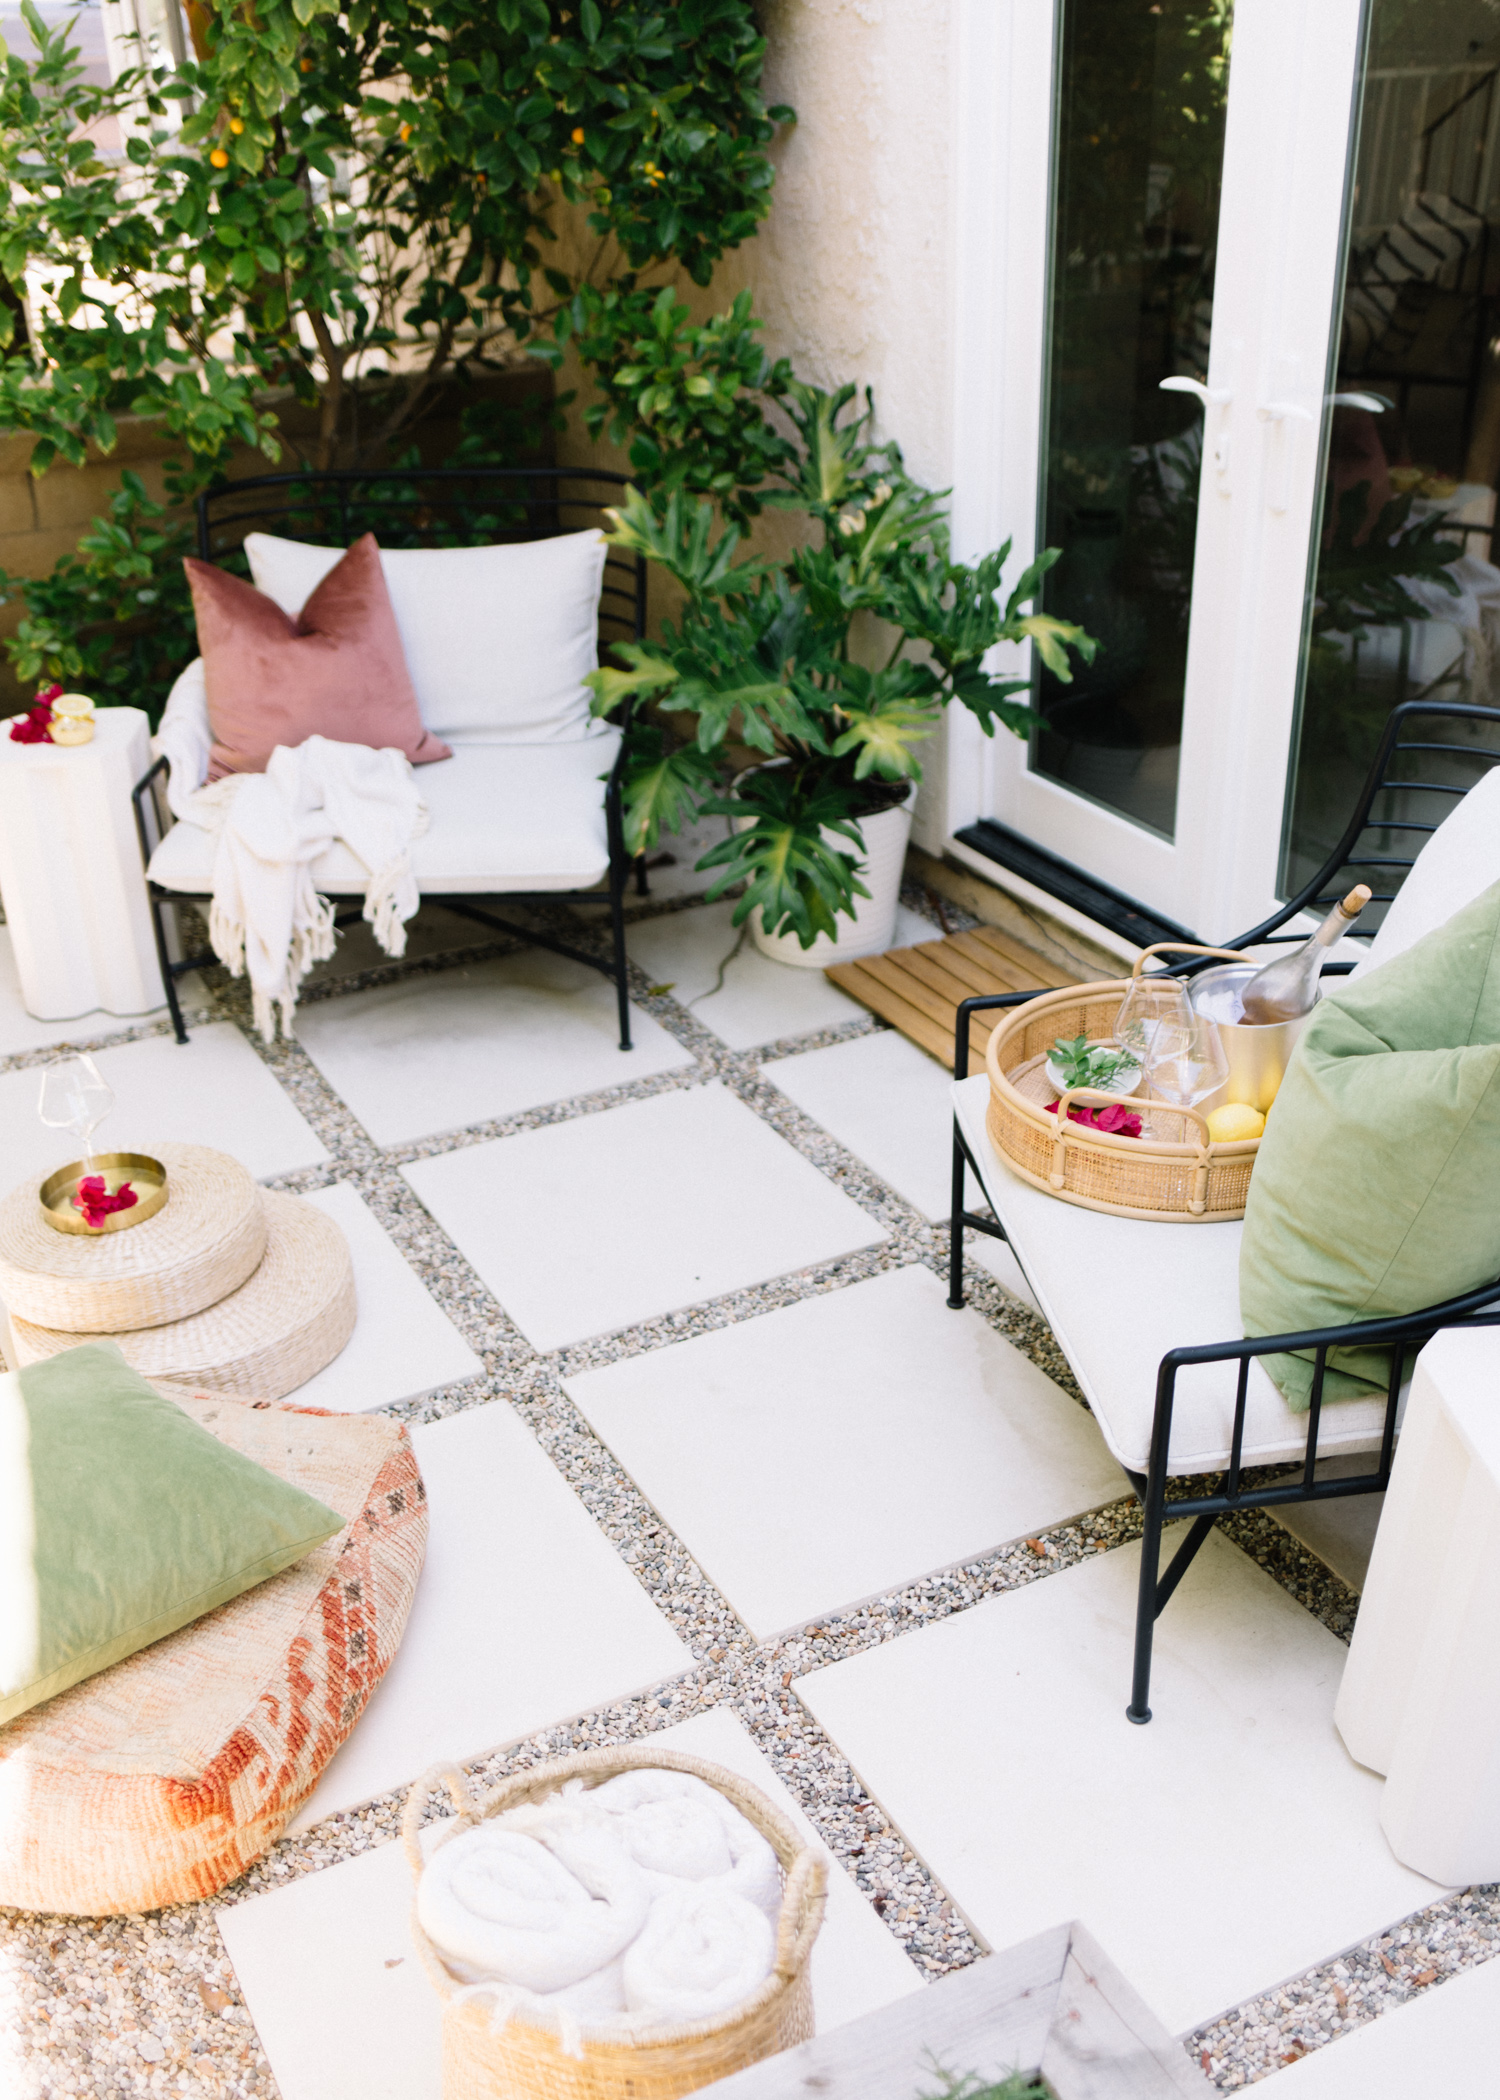 Outdoor Space Update | A Fabulous Fete